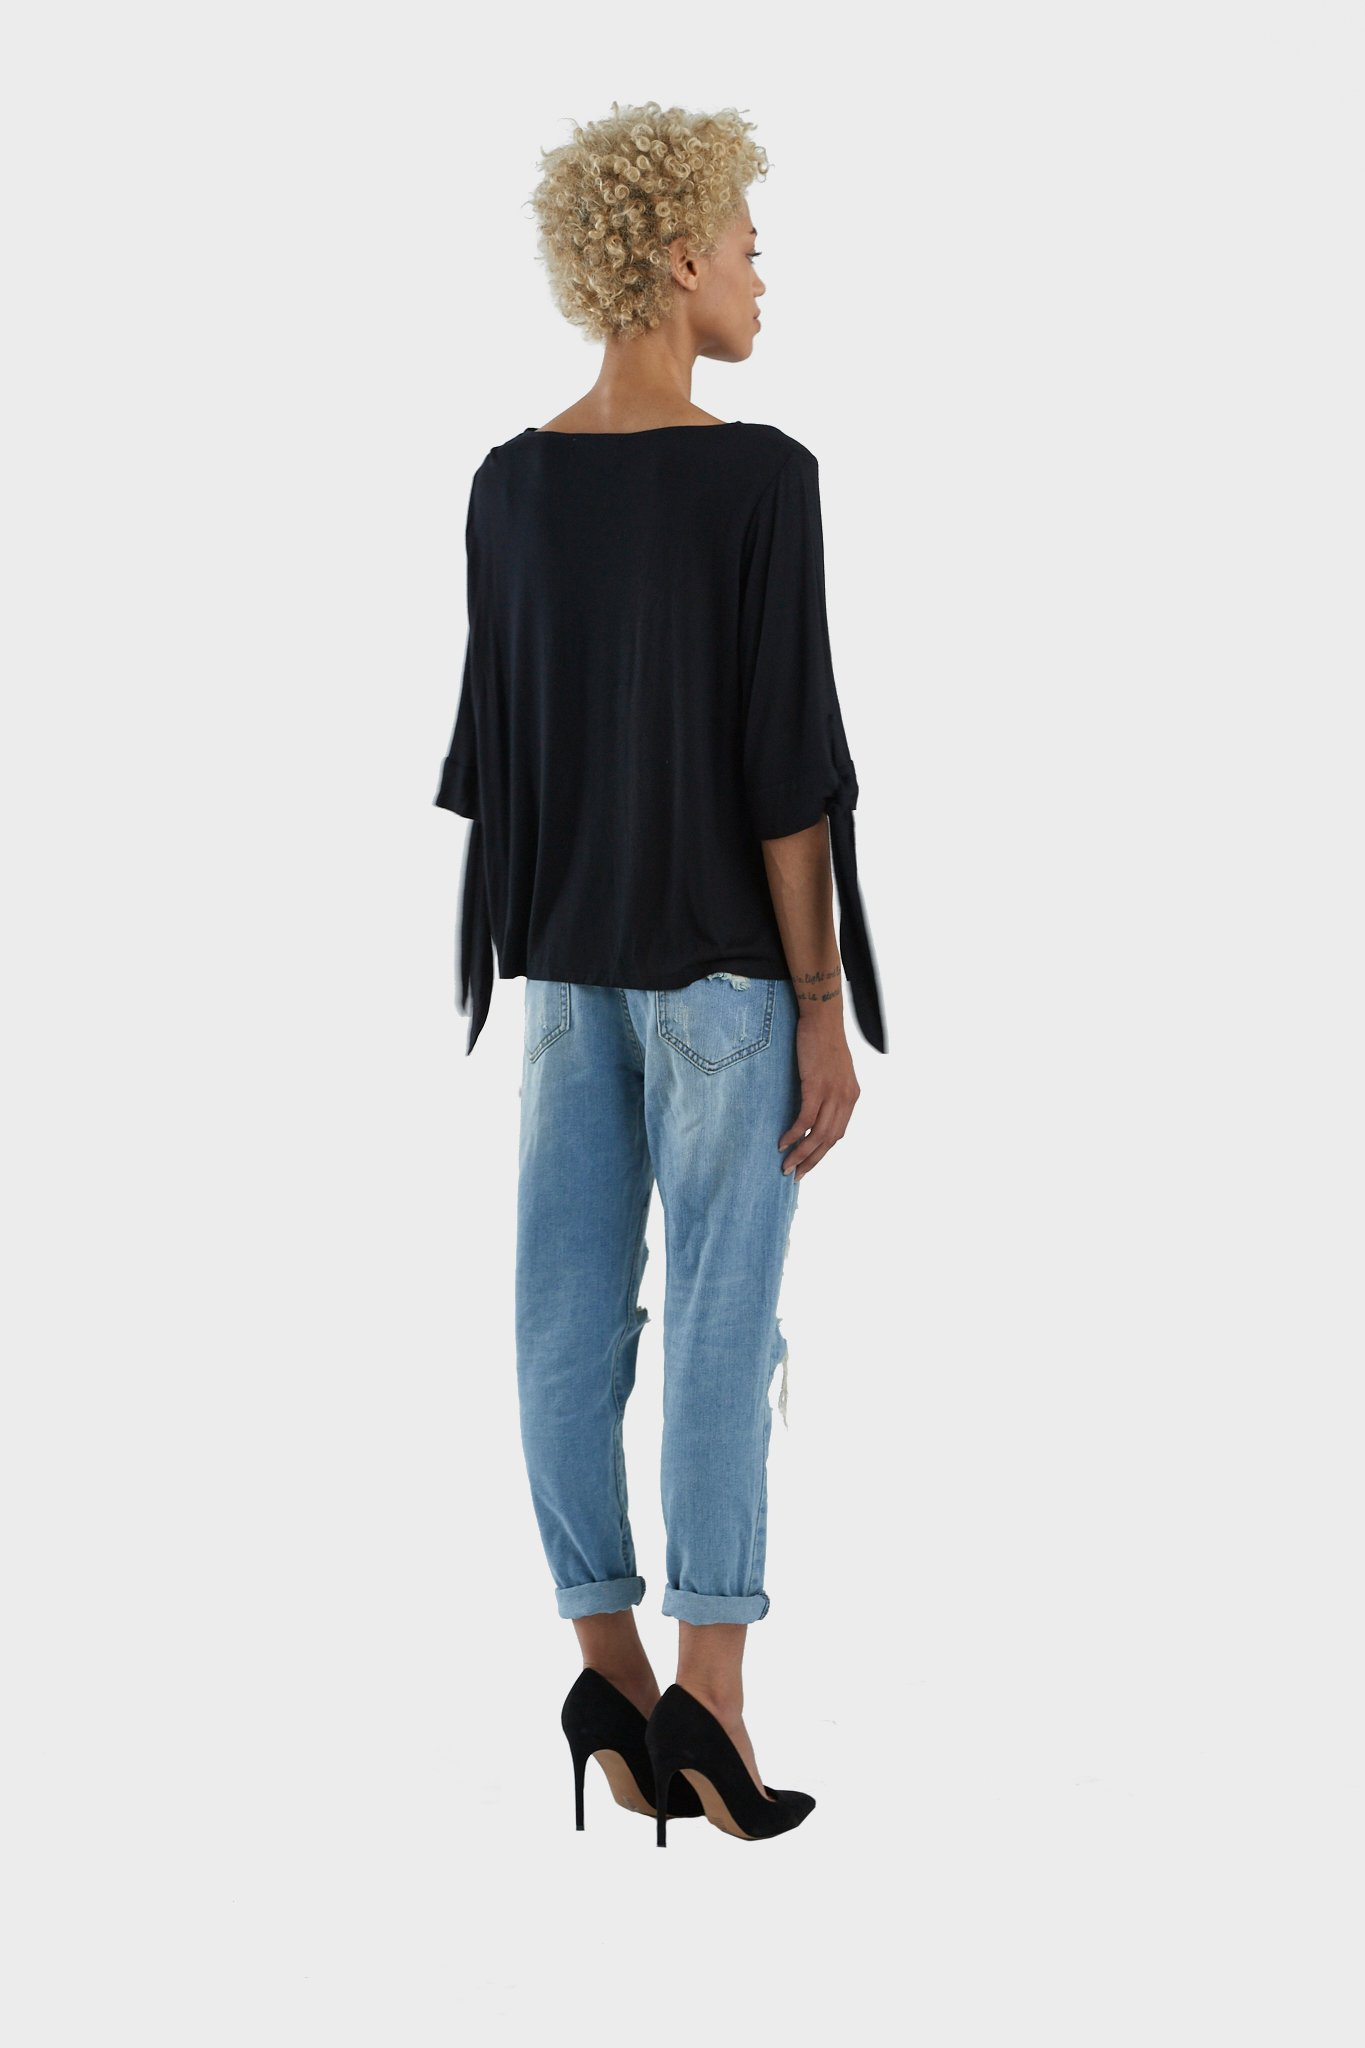 boatneck-black-top